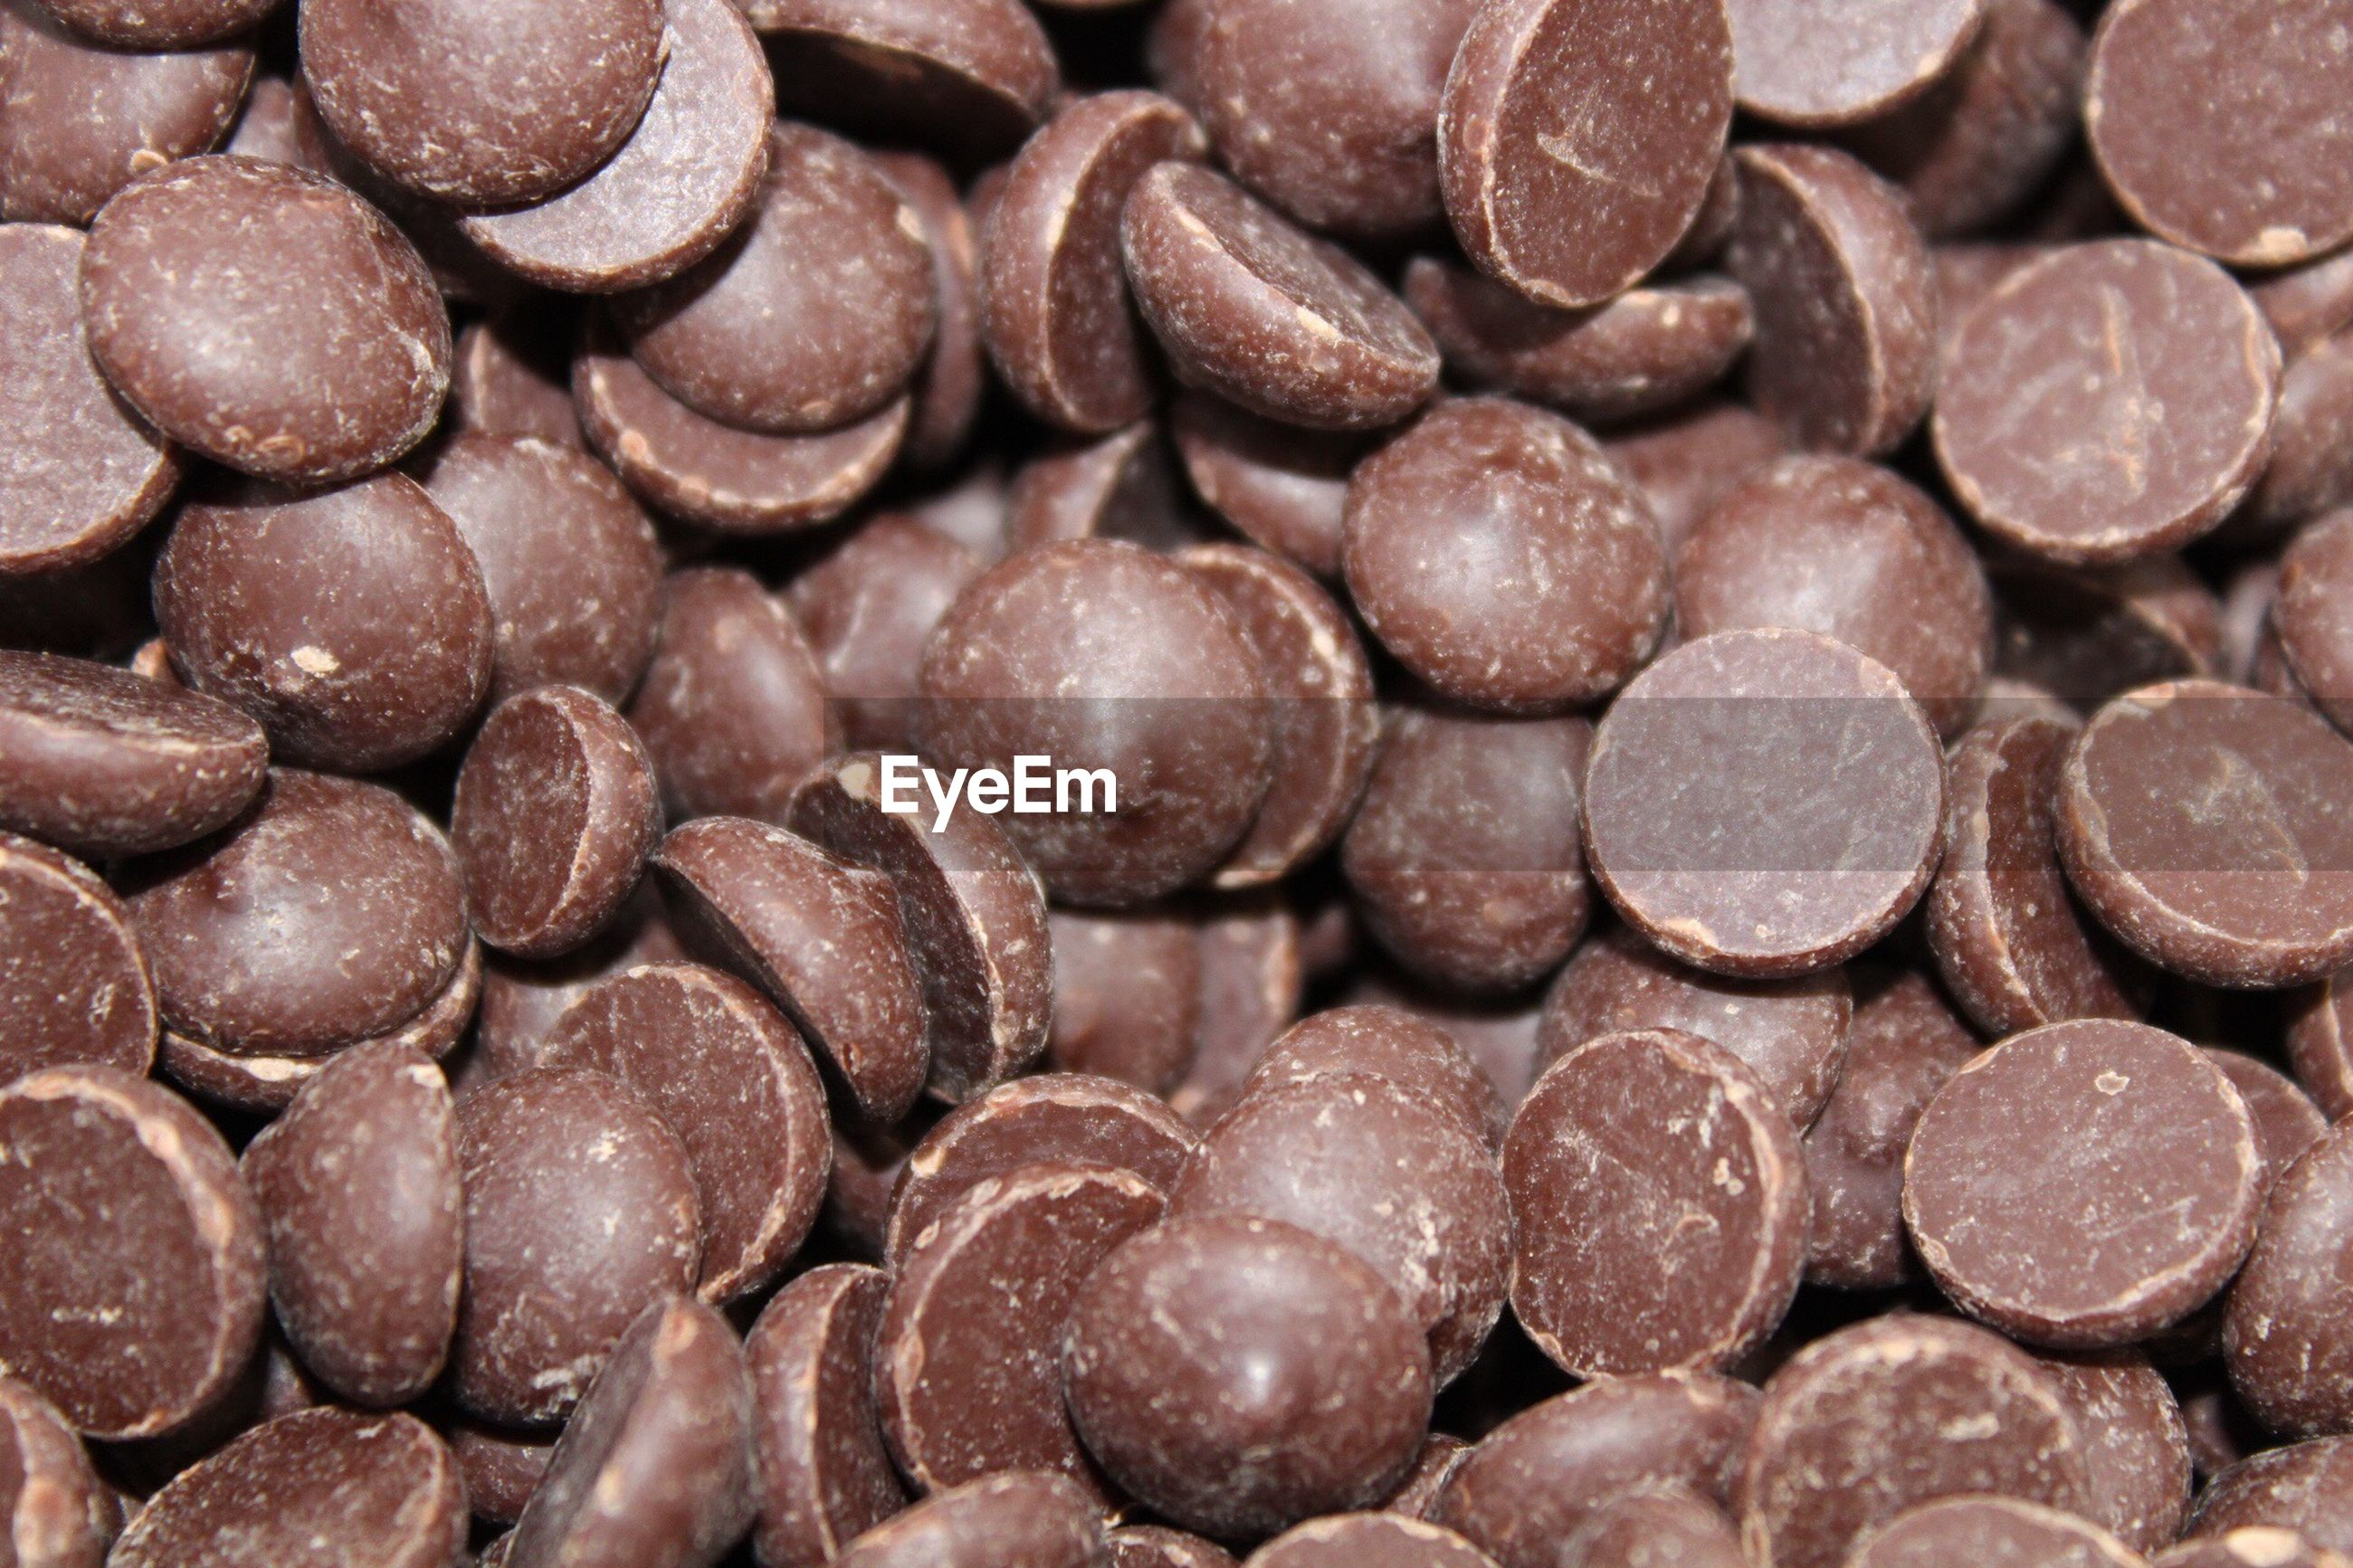 brown, freshness, food and drink, full frame, food, close-up, backgrounds, large group of objects, no people, indoors, coffee bean